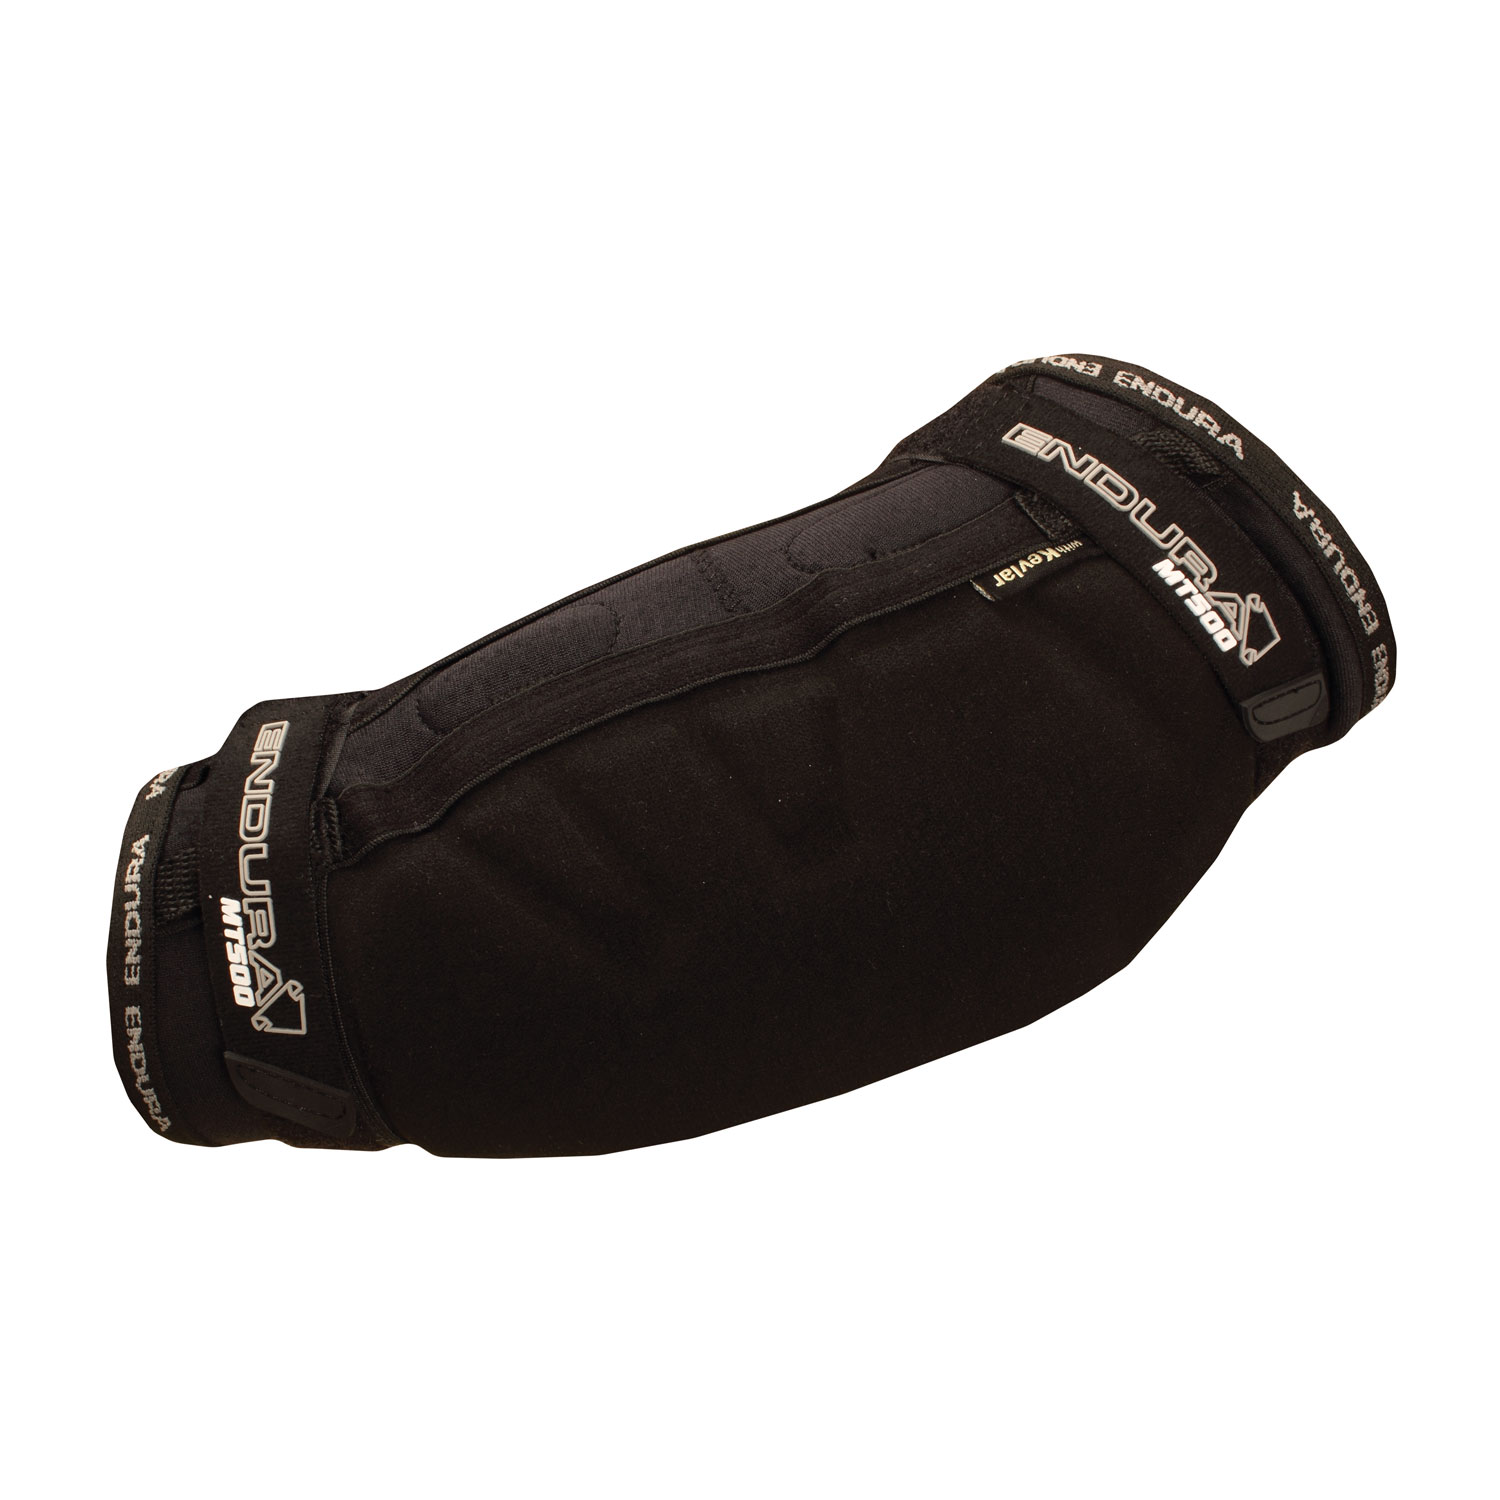 MT500 Elbow Protector Black/None